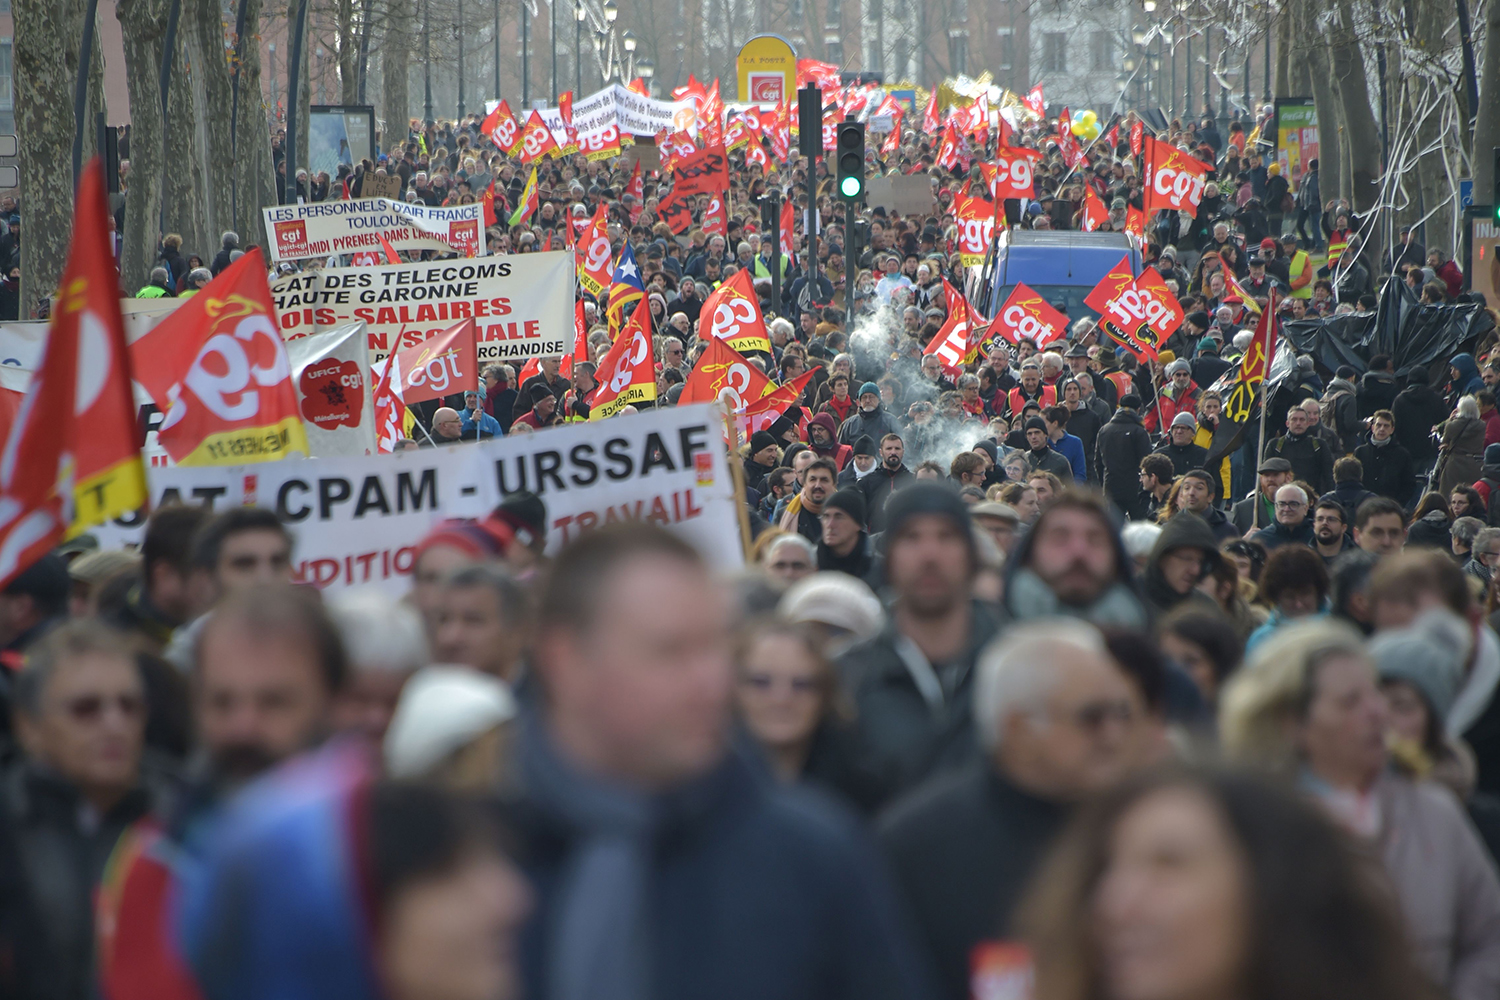 Protesters march during a demonstration as part of the nationwide strike in Toulouse, southern France, on Jan. 16. PASCAL PAVANI/AFP via Getty Images